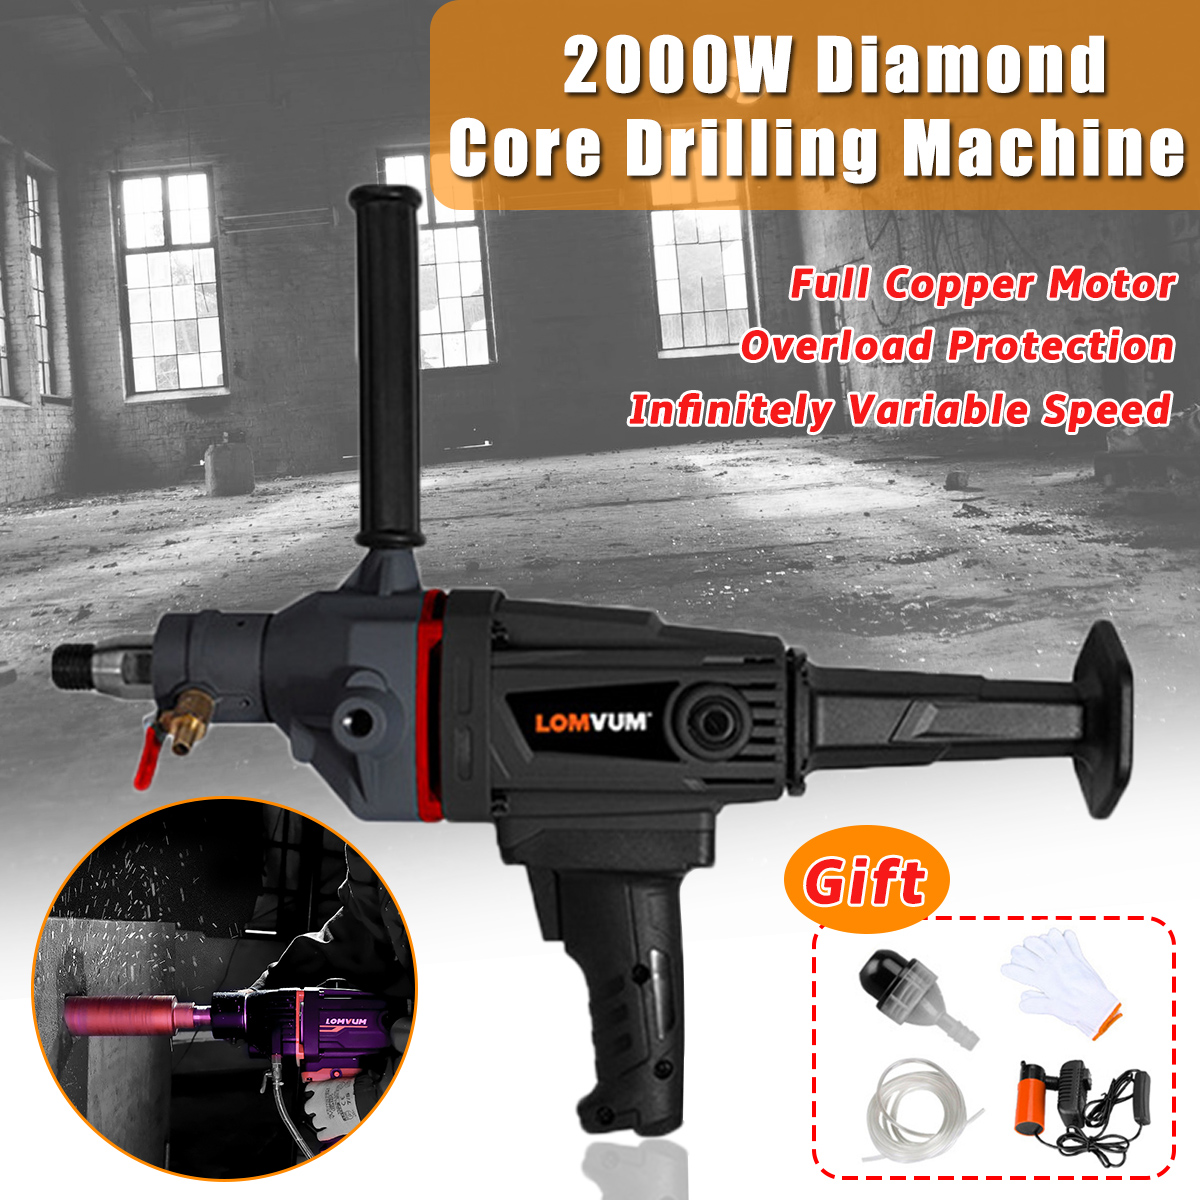 220V 2000W 180mm Handheld Diamond Core Drill Concrete Core Drilling Machine Wet/Dry Electric Drill Water Drill With Water Pump